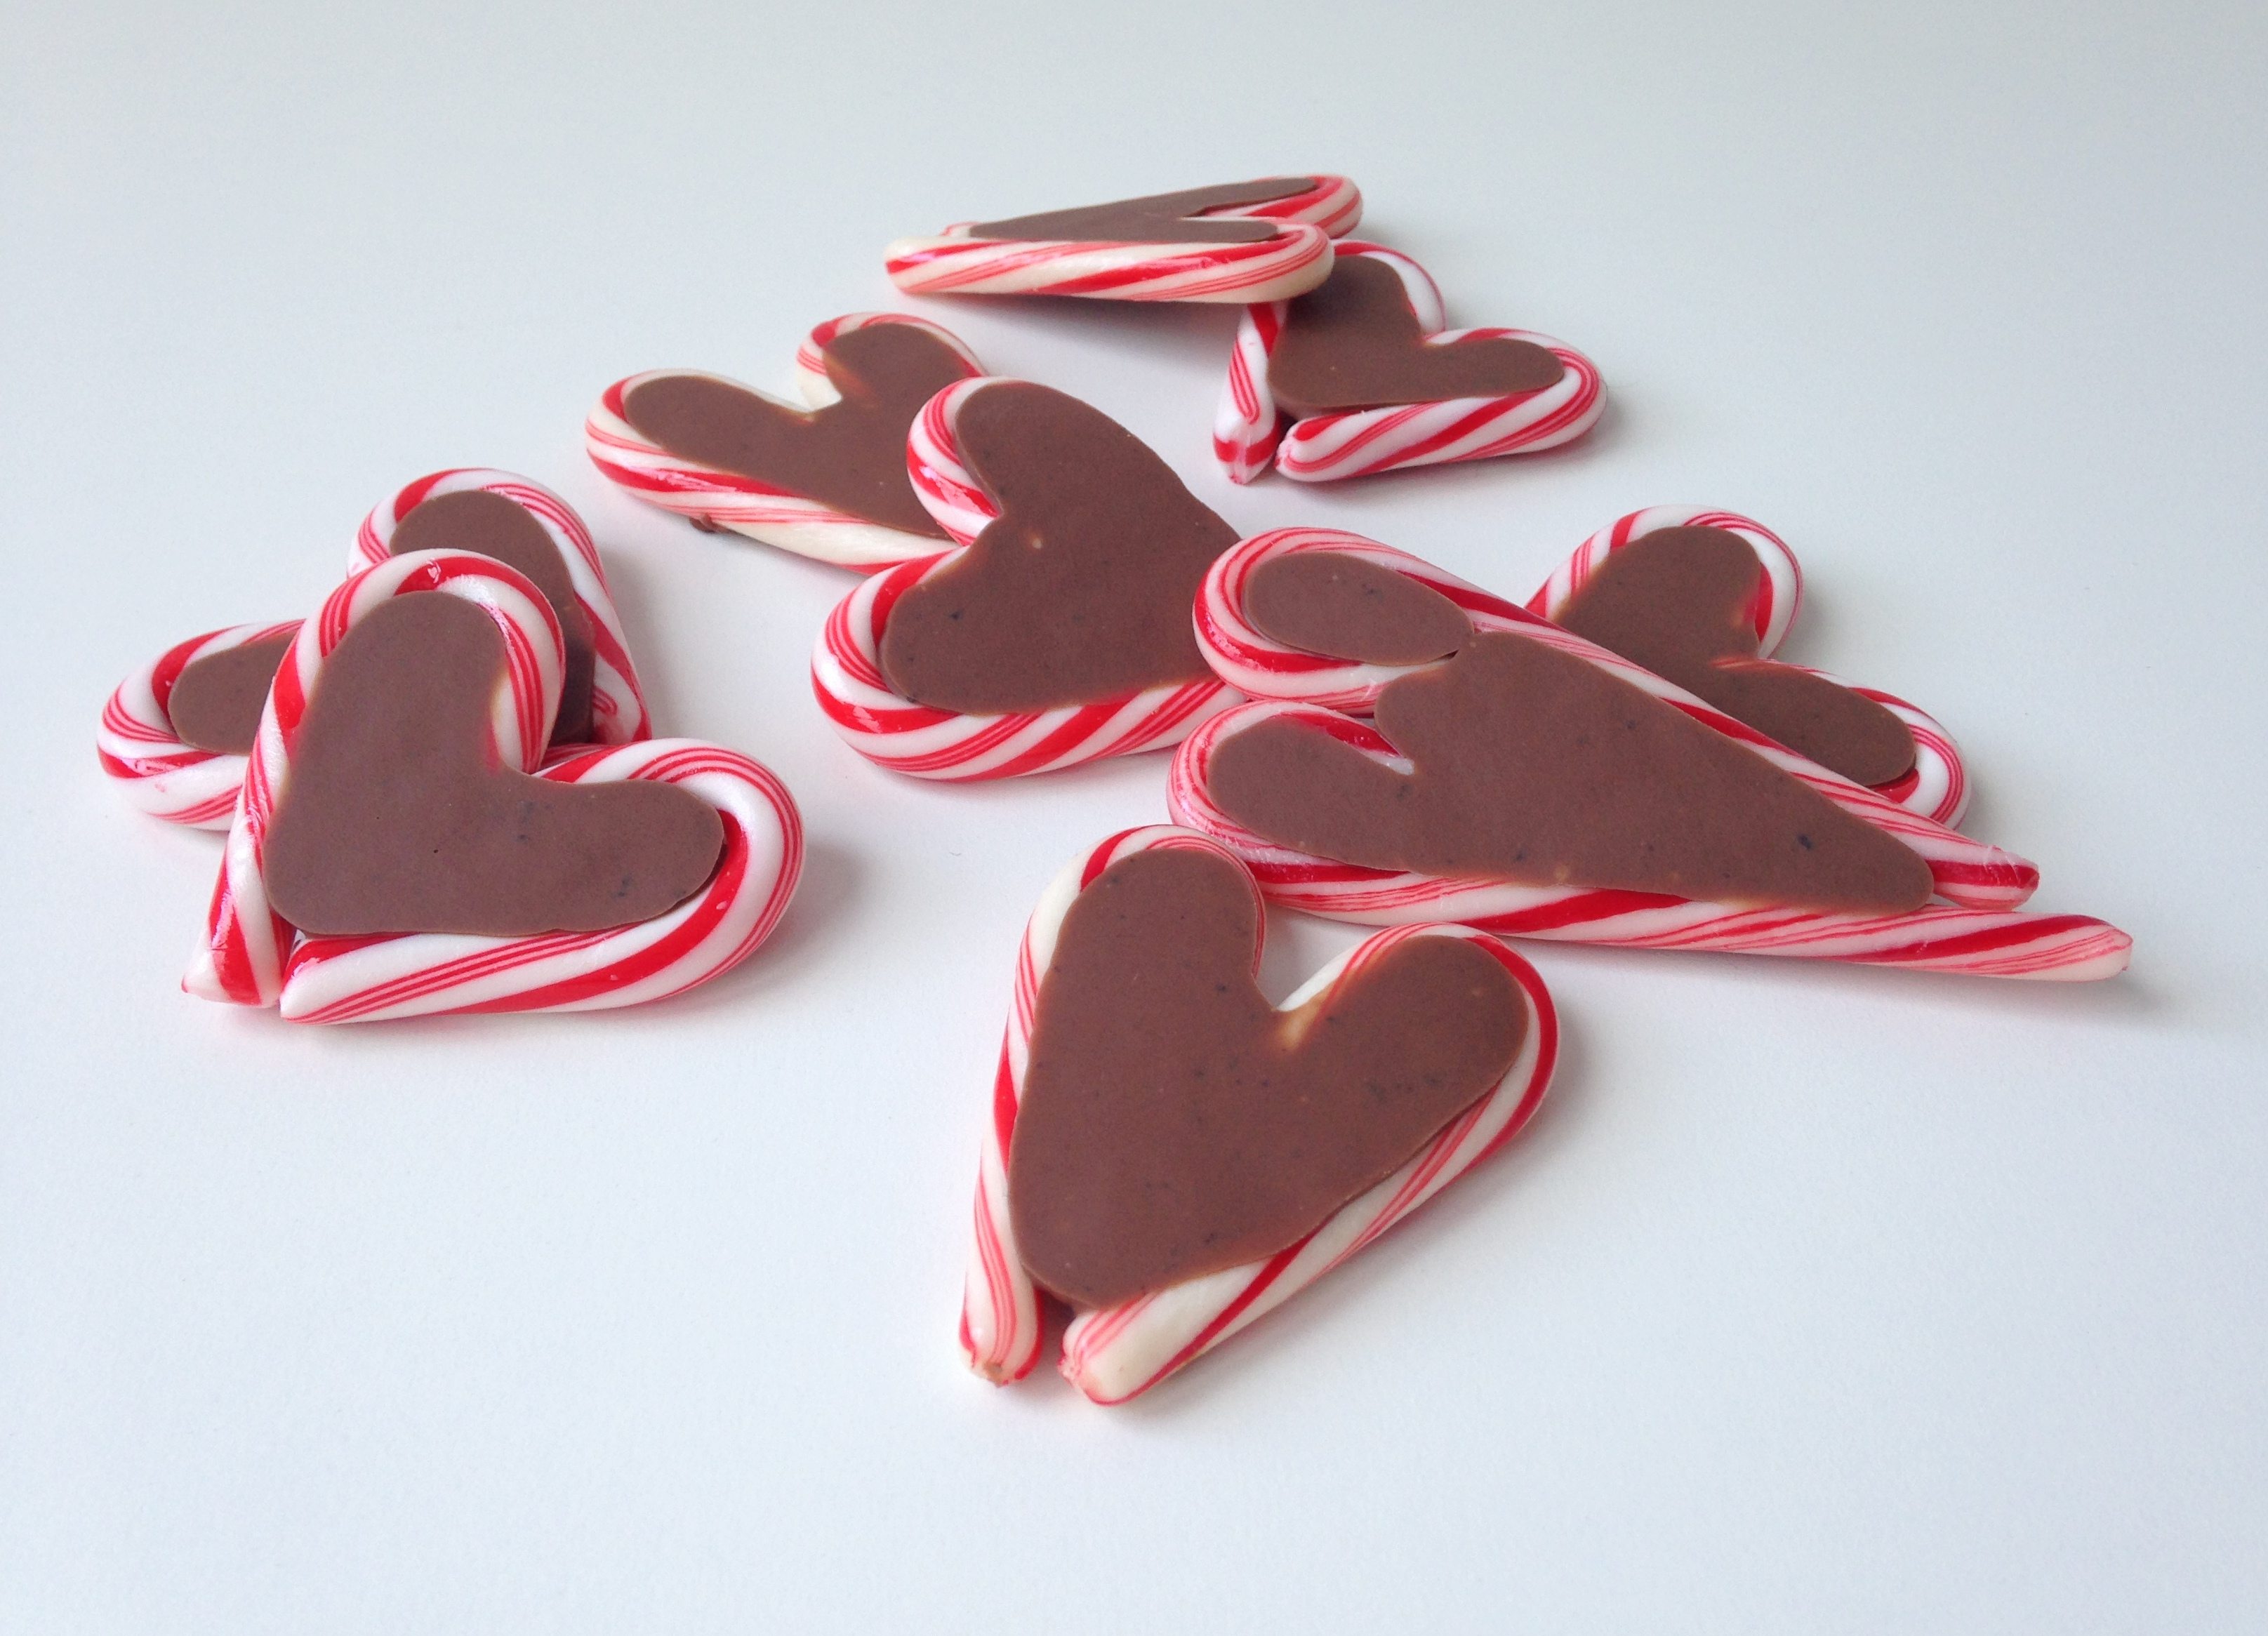 maRRose - CCC: Chocolate Candy Cane Hearts